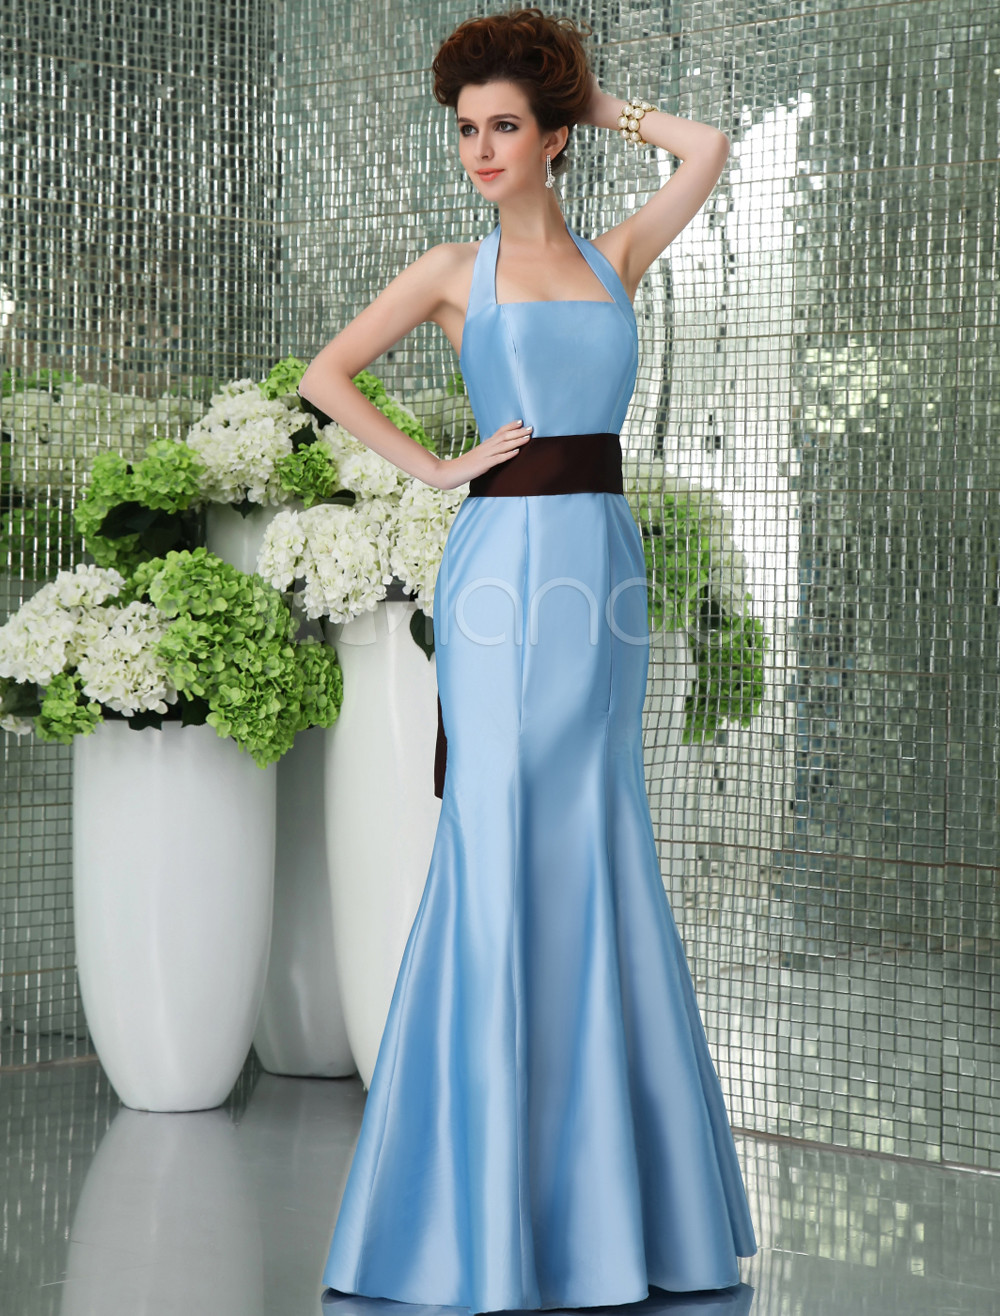 Vestidos De Baño Estilo Halter:Blue Halter Wedding Dress with Sash